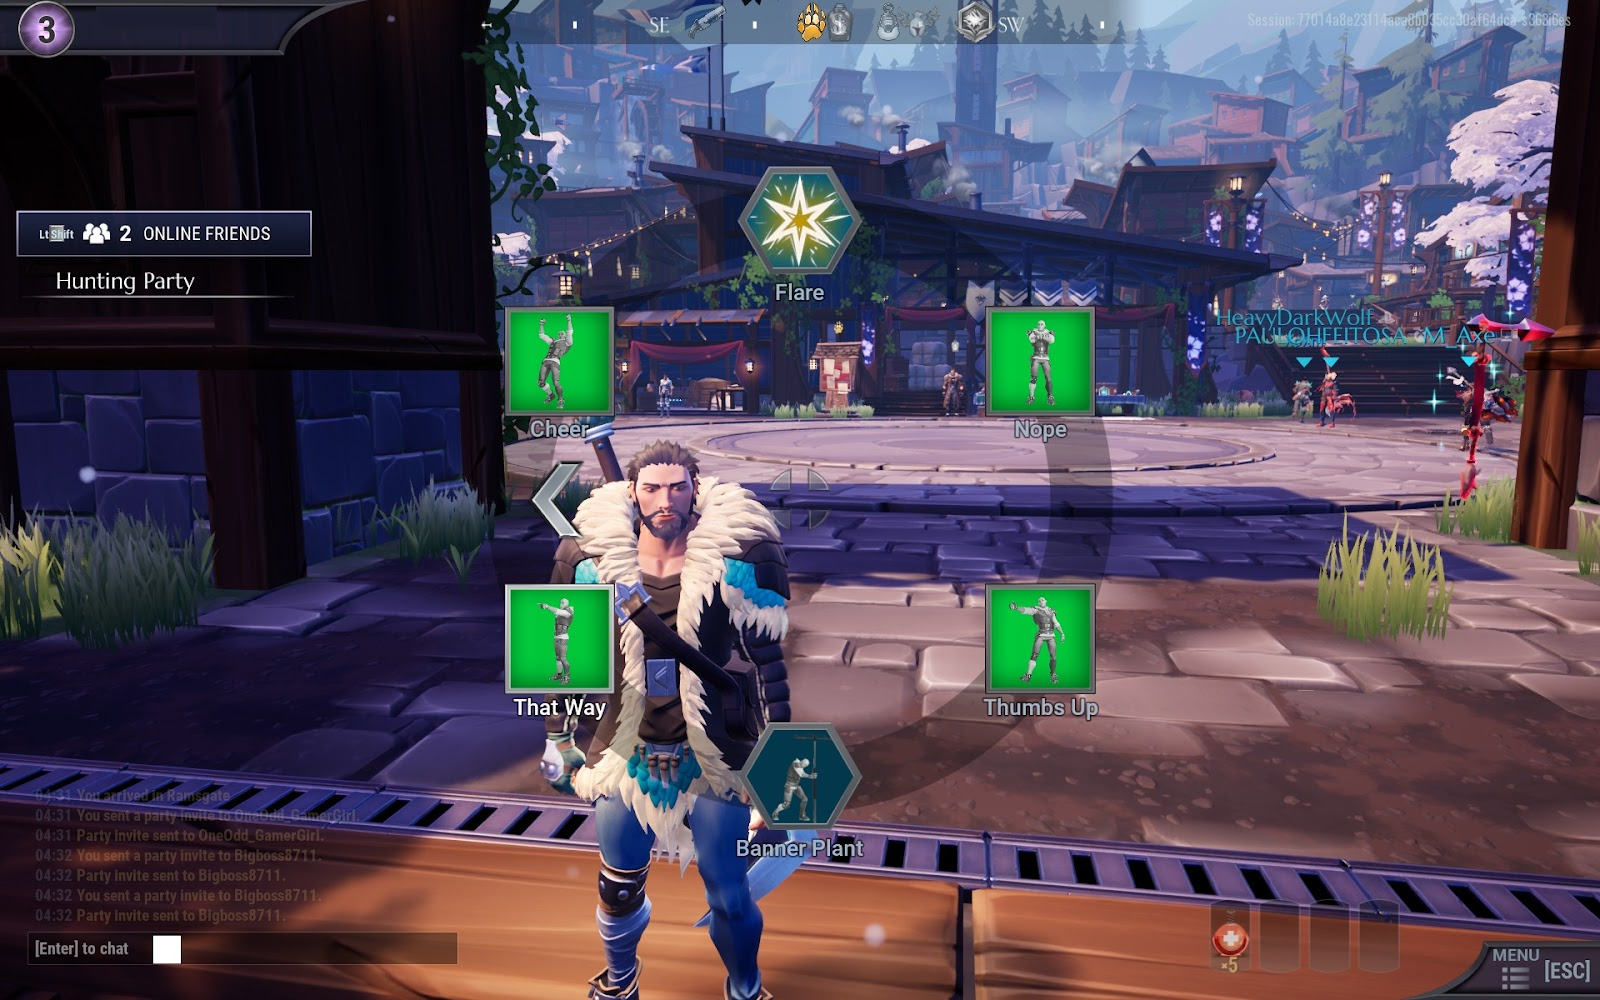 The character in the city and the emote wheel displaying six icons.